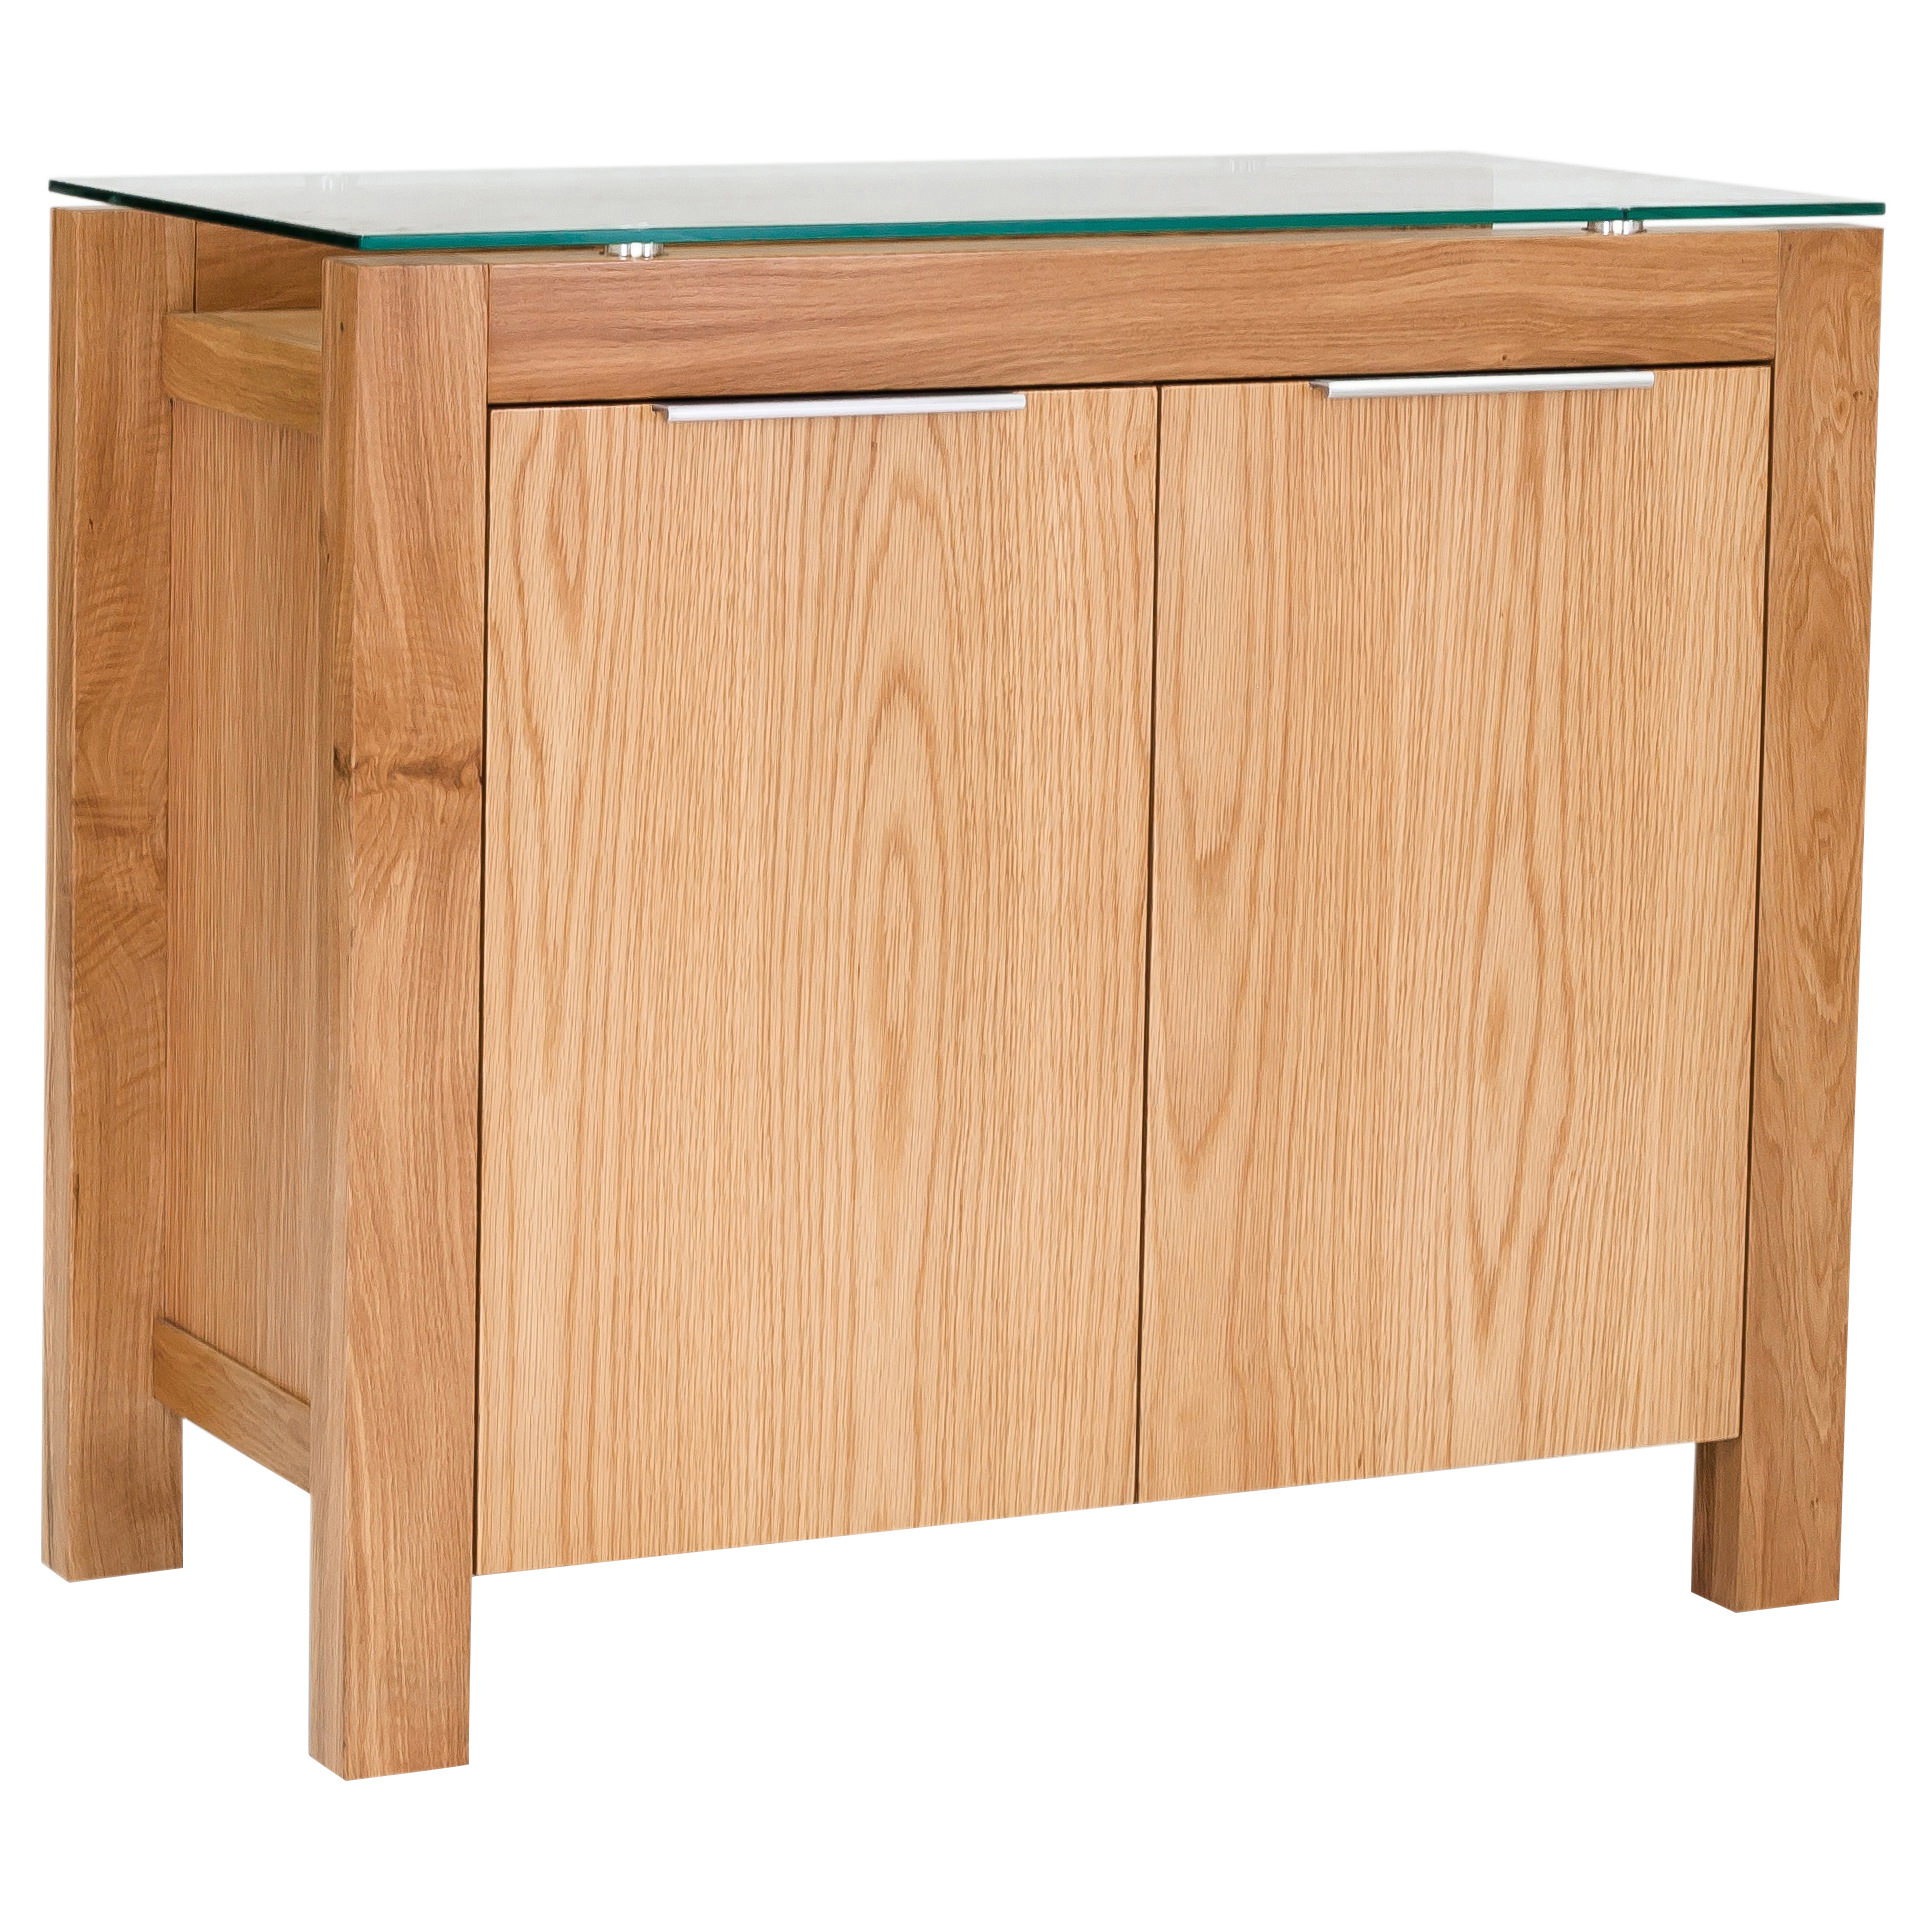 Description  Solid American white oak and glass sideboard storage cabinet  with square legs f0e1eced8